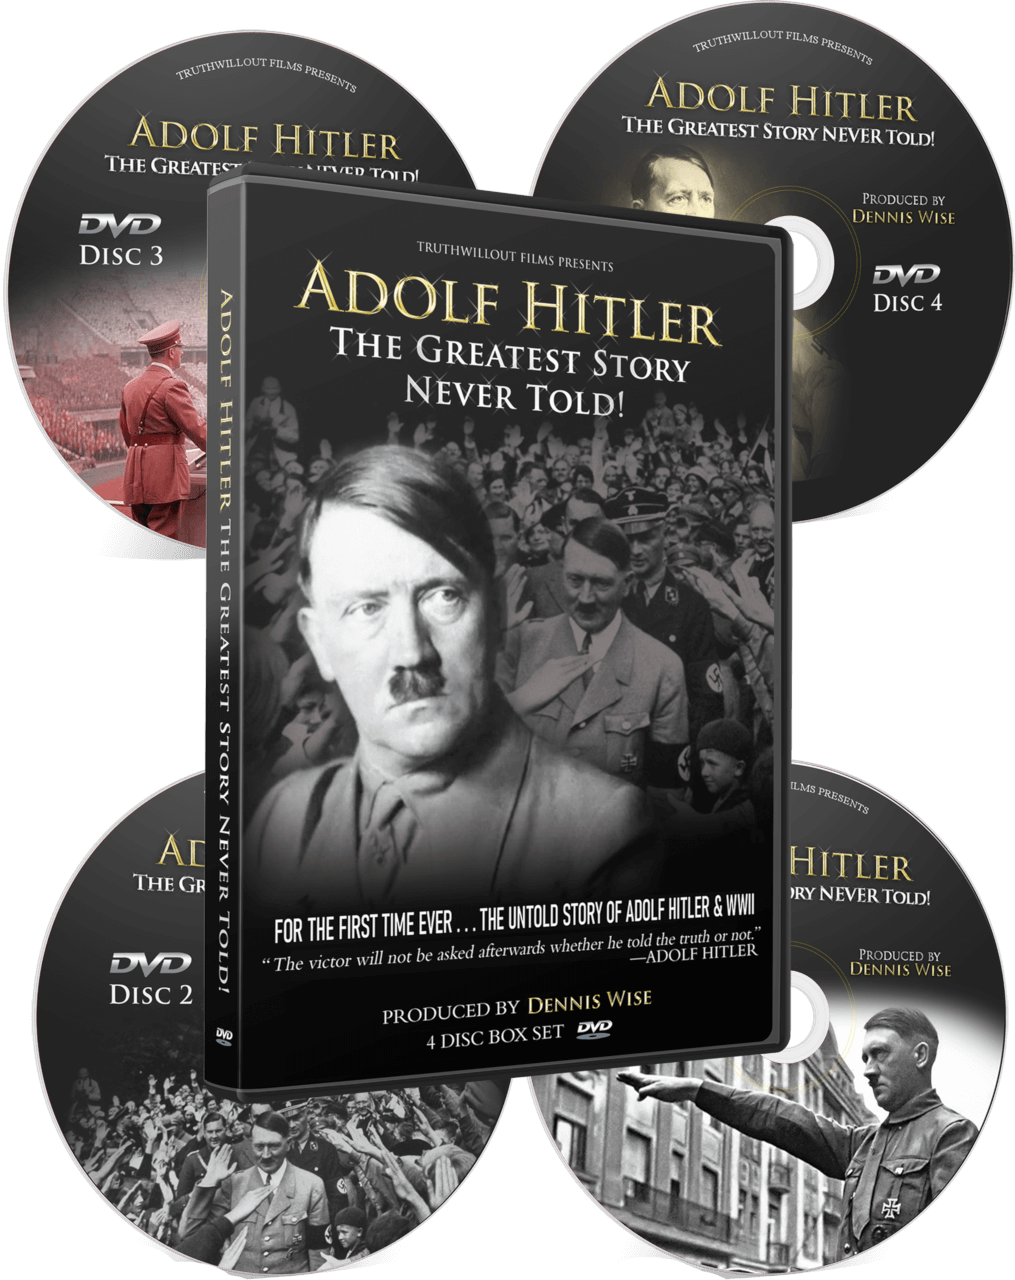 Adolf Hitler: The Greatest Story Never Told!